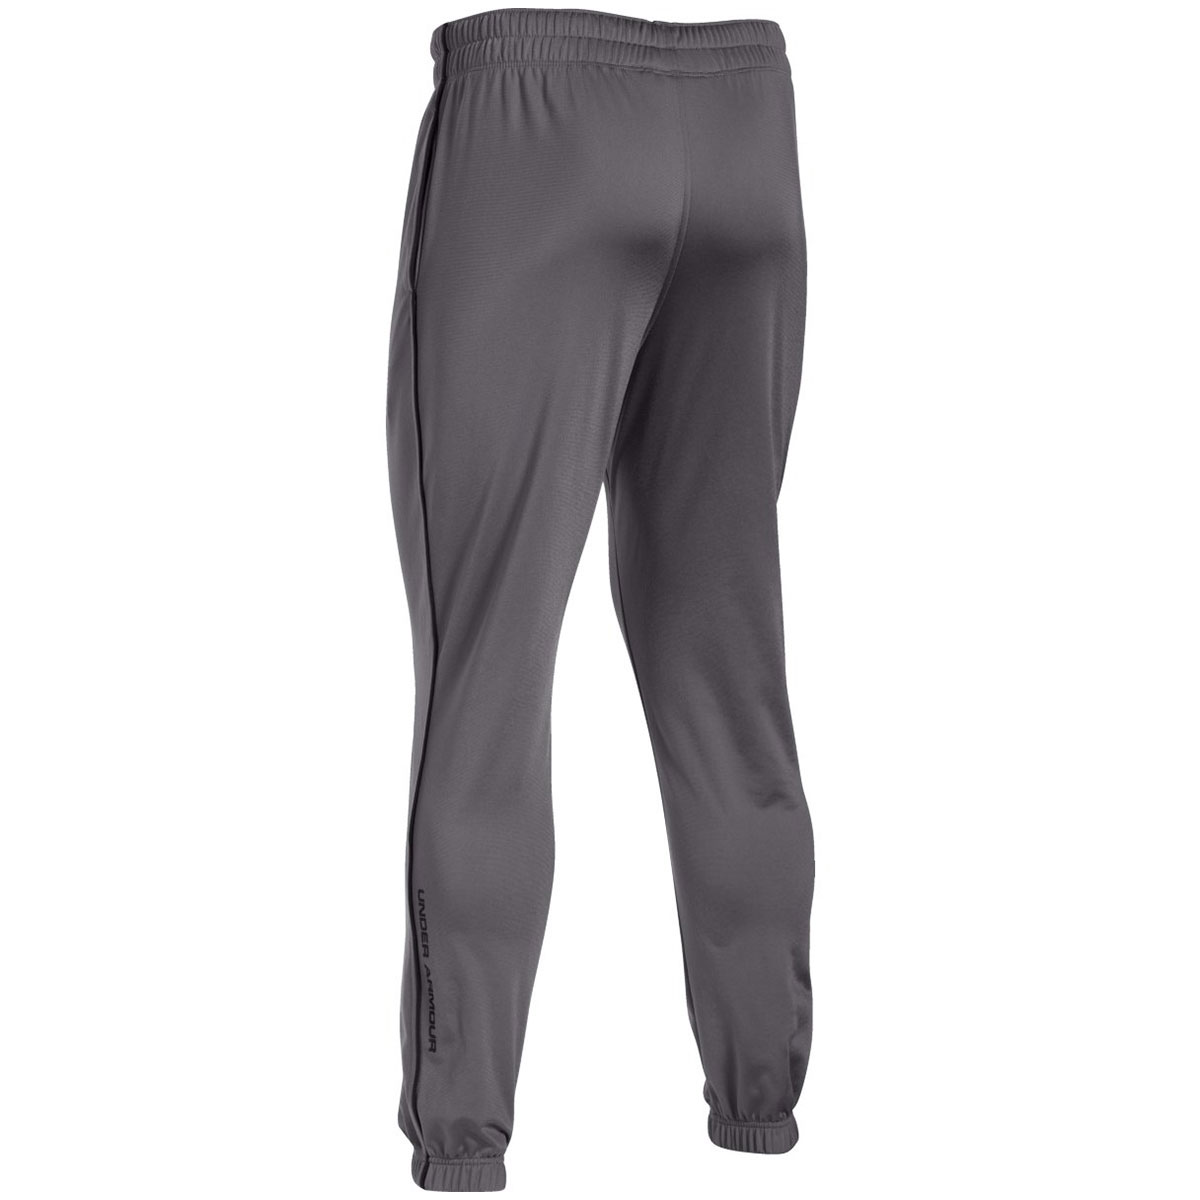 under armour 3 4 pants. picture 3 of 4 under armour pants